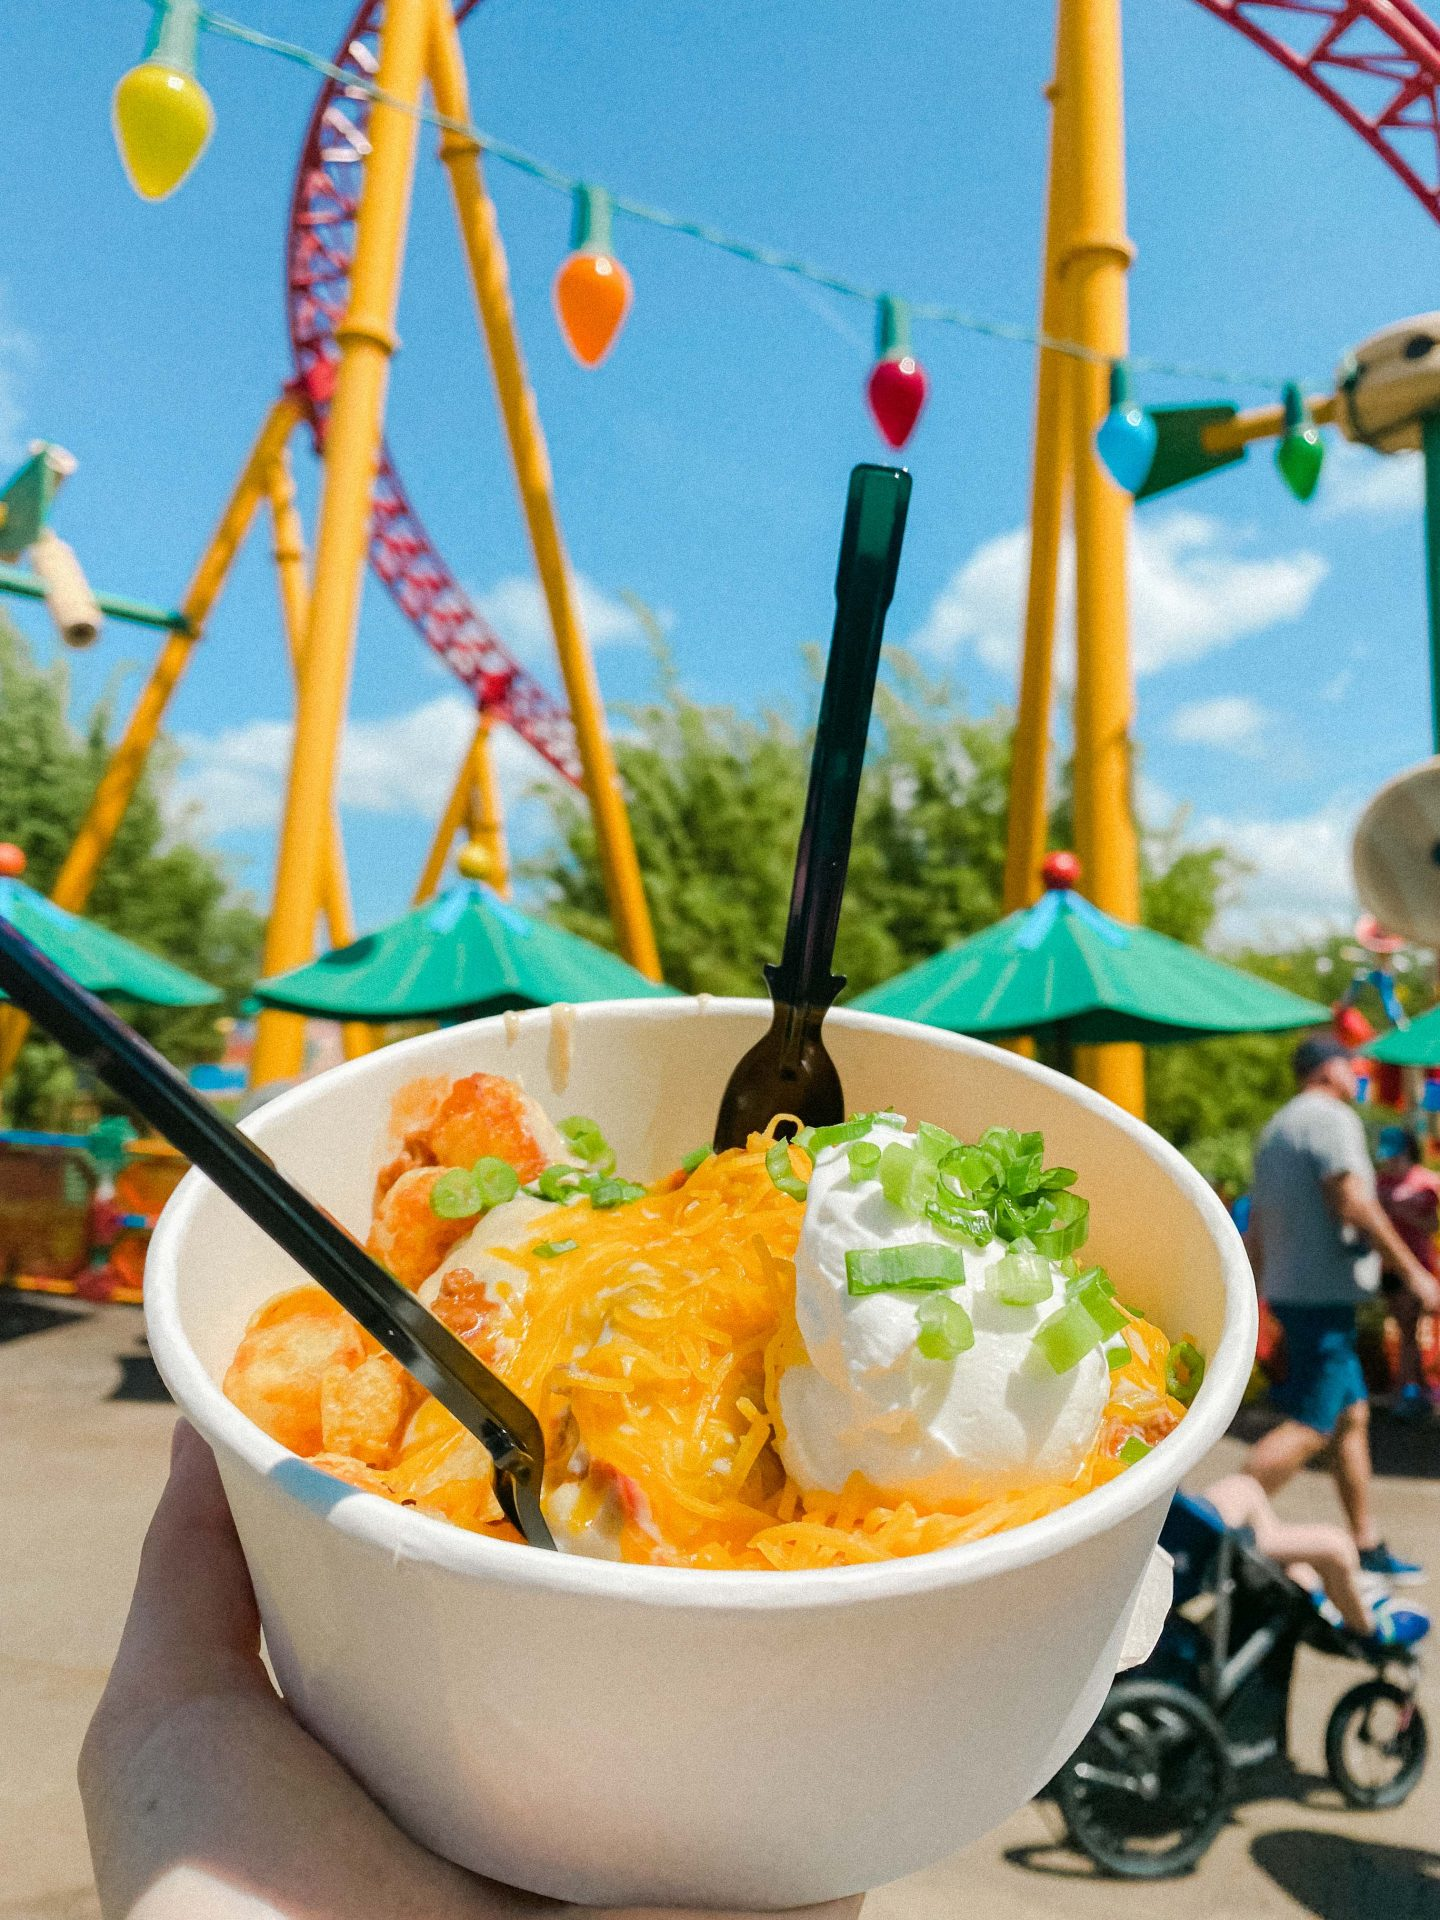 toy story land, woody's tots, tater tots Hollywood studios, magical, slinky, disney world, Florida, Orlando, wdw, walt disney world trip, what to do at Hollywood studios, slinky dog dash, woody's lunchbox, what to eat, blog, itinerary